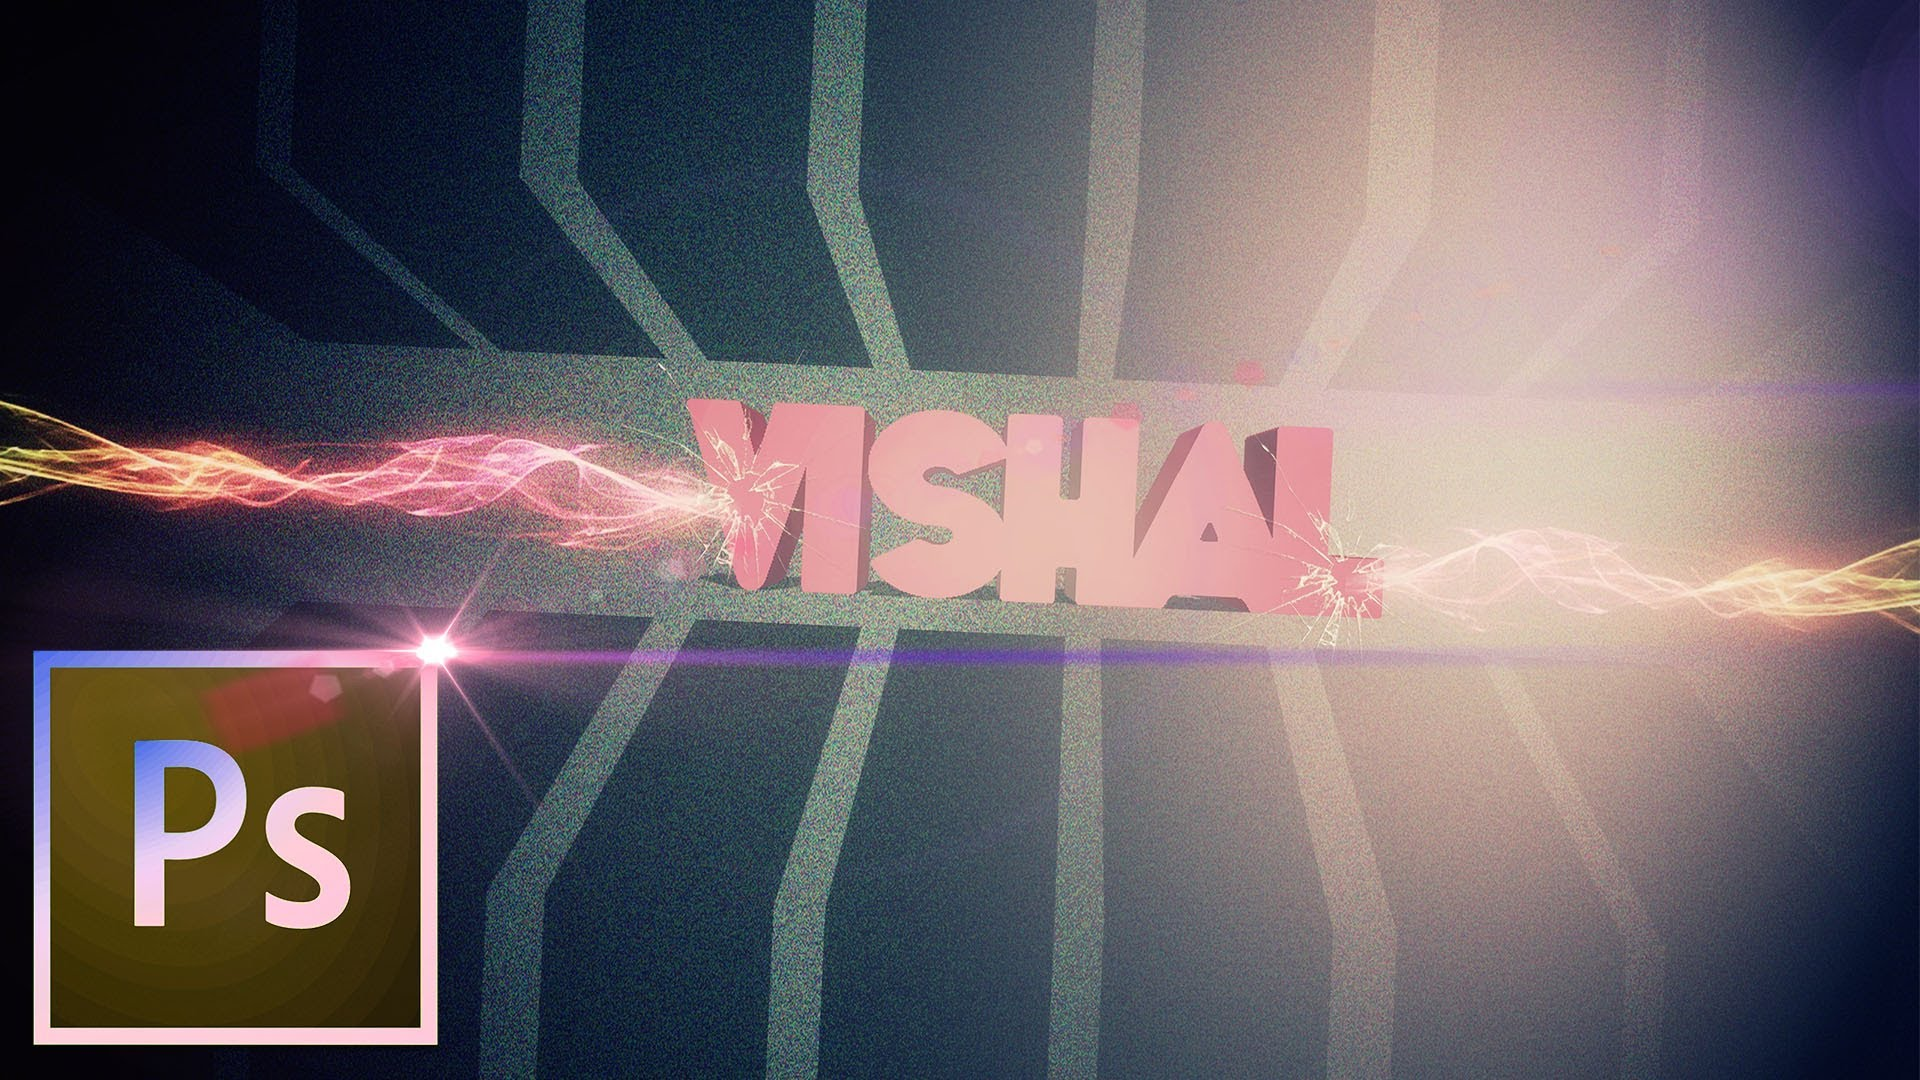 Vishal Name 3D Wallpaper